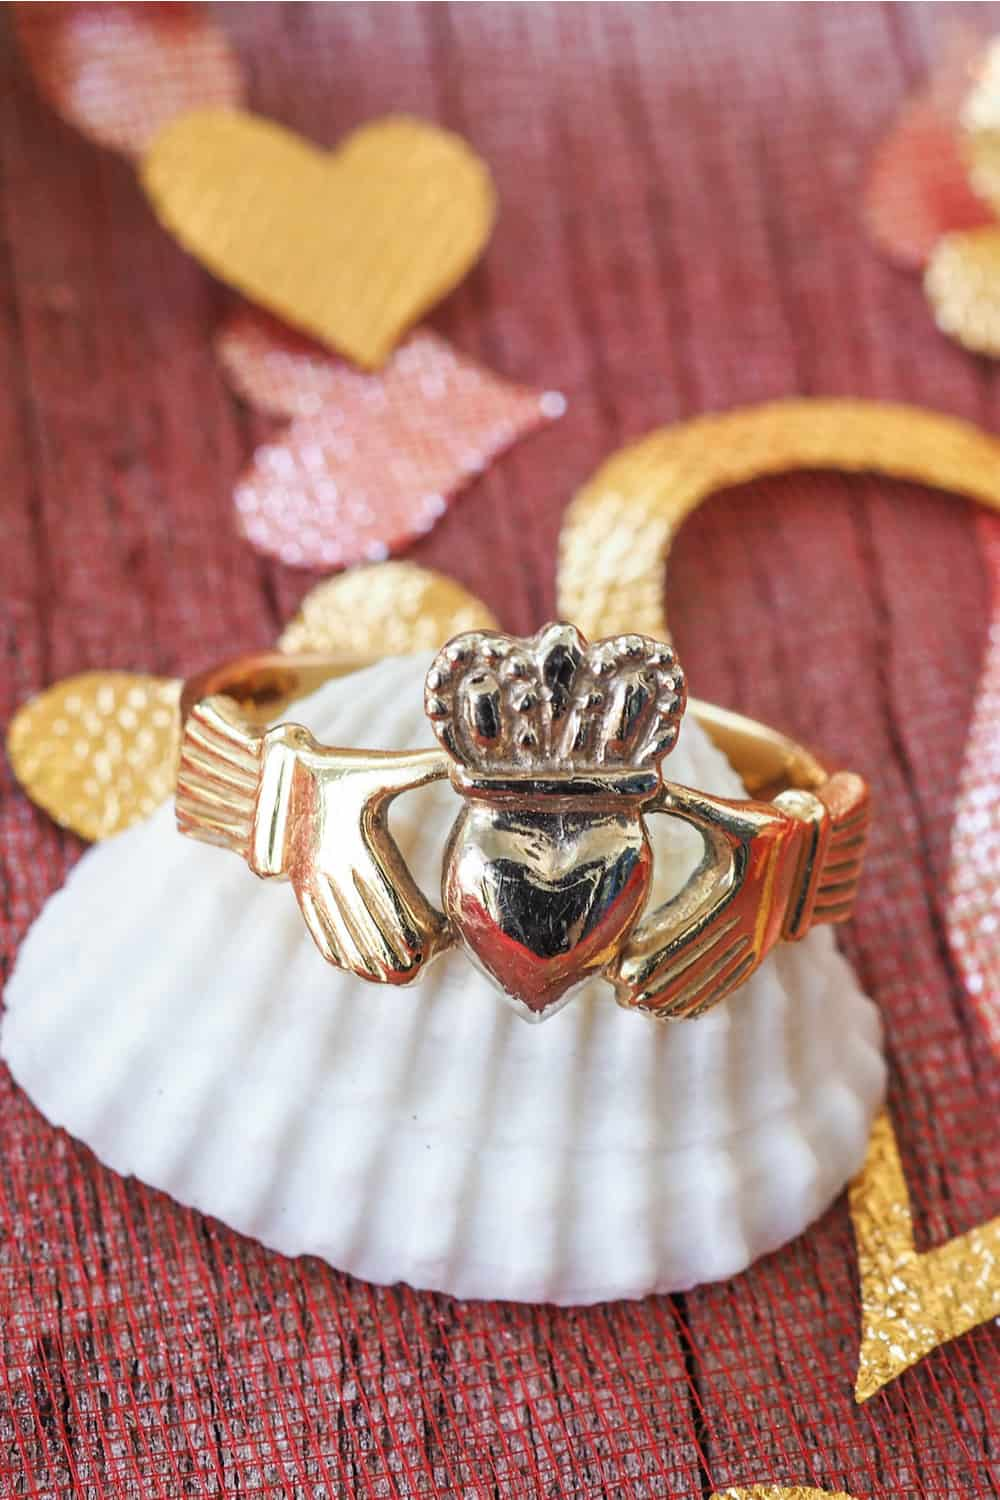 What Is a Claddagh Ring